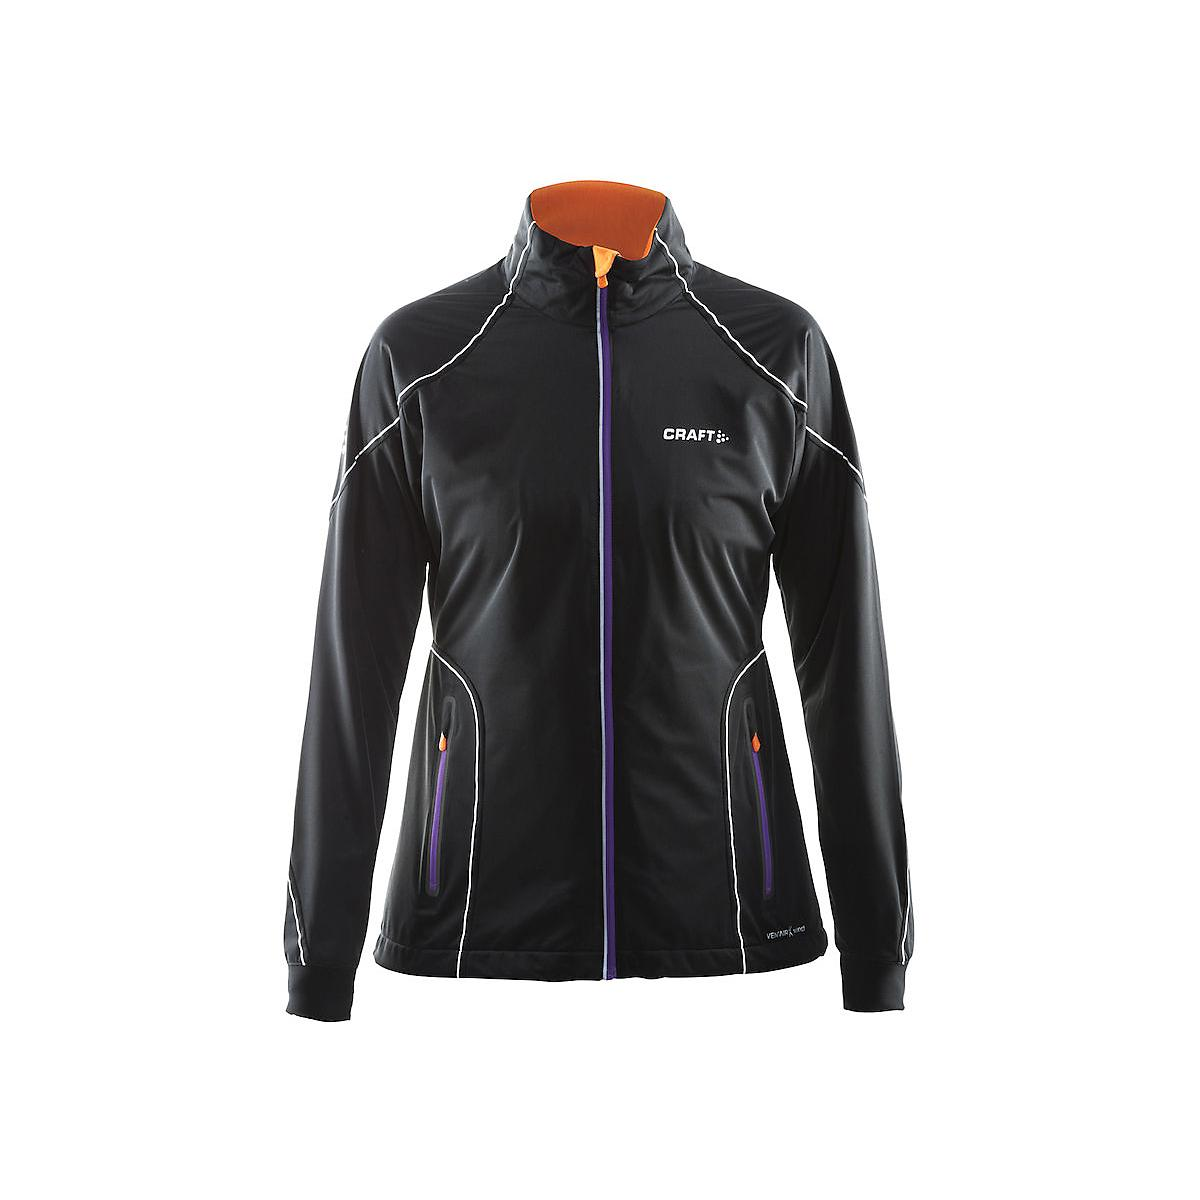 Women's Craft�High Function Jacket